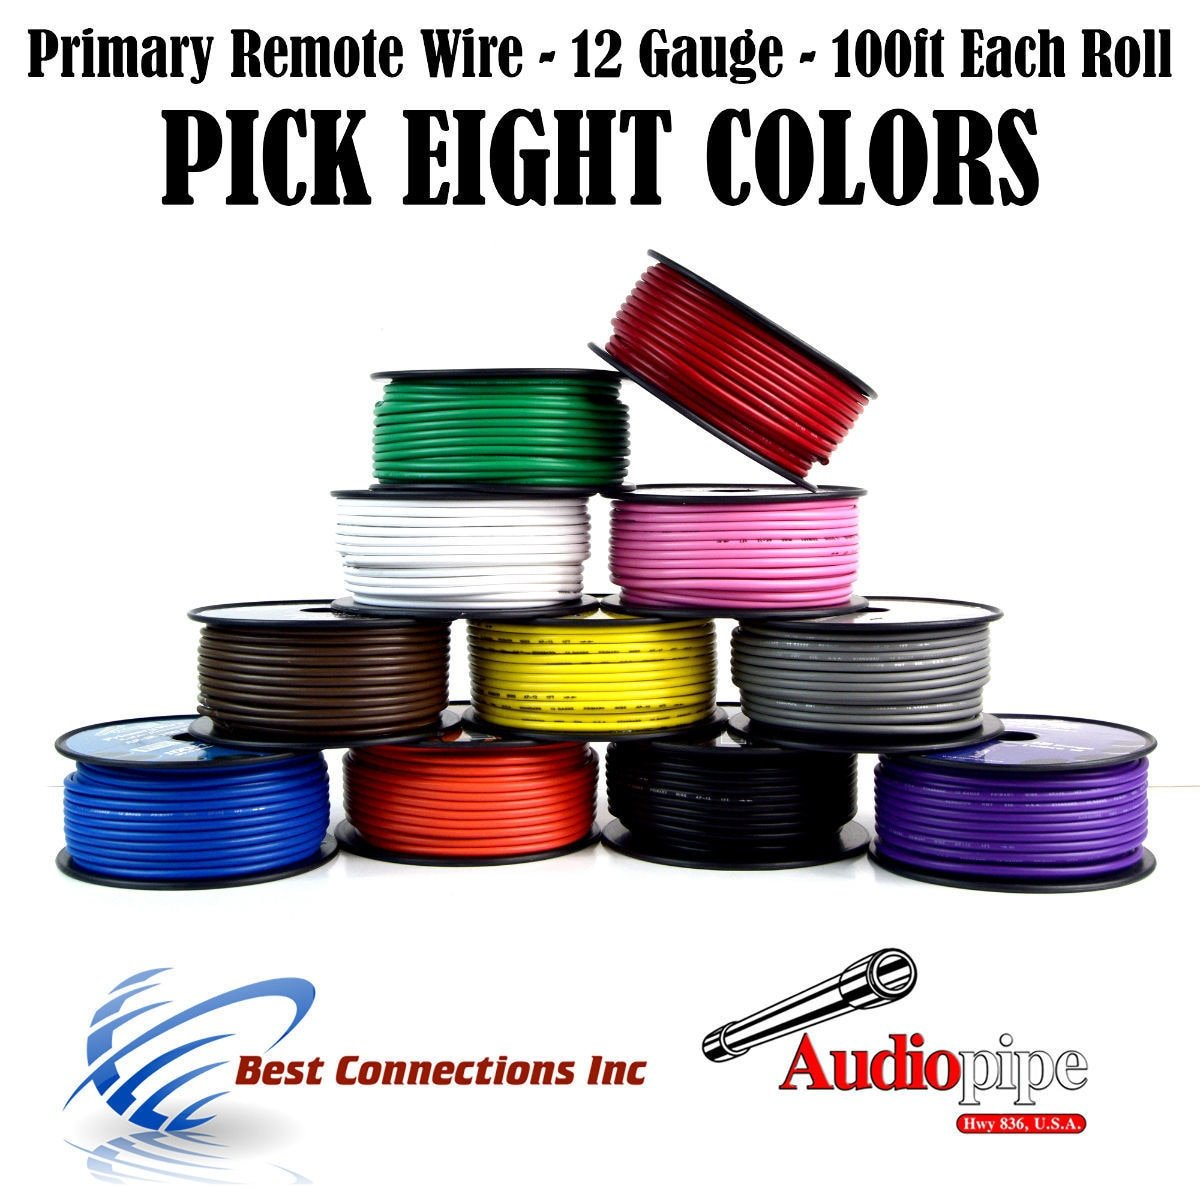 12 GA PRIMARY POWER GROUND WIRE (8) 100FT ROLLS BOAT CAR 12- 80 VOLT MULTI COLOR by Audiopipe / Best Connections